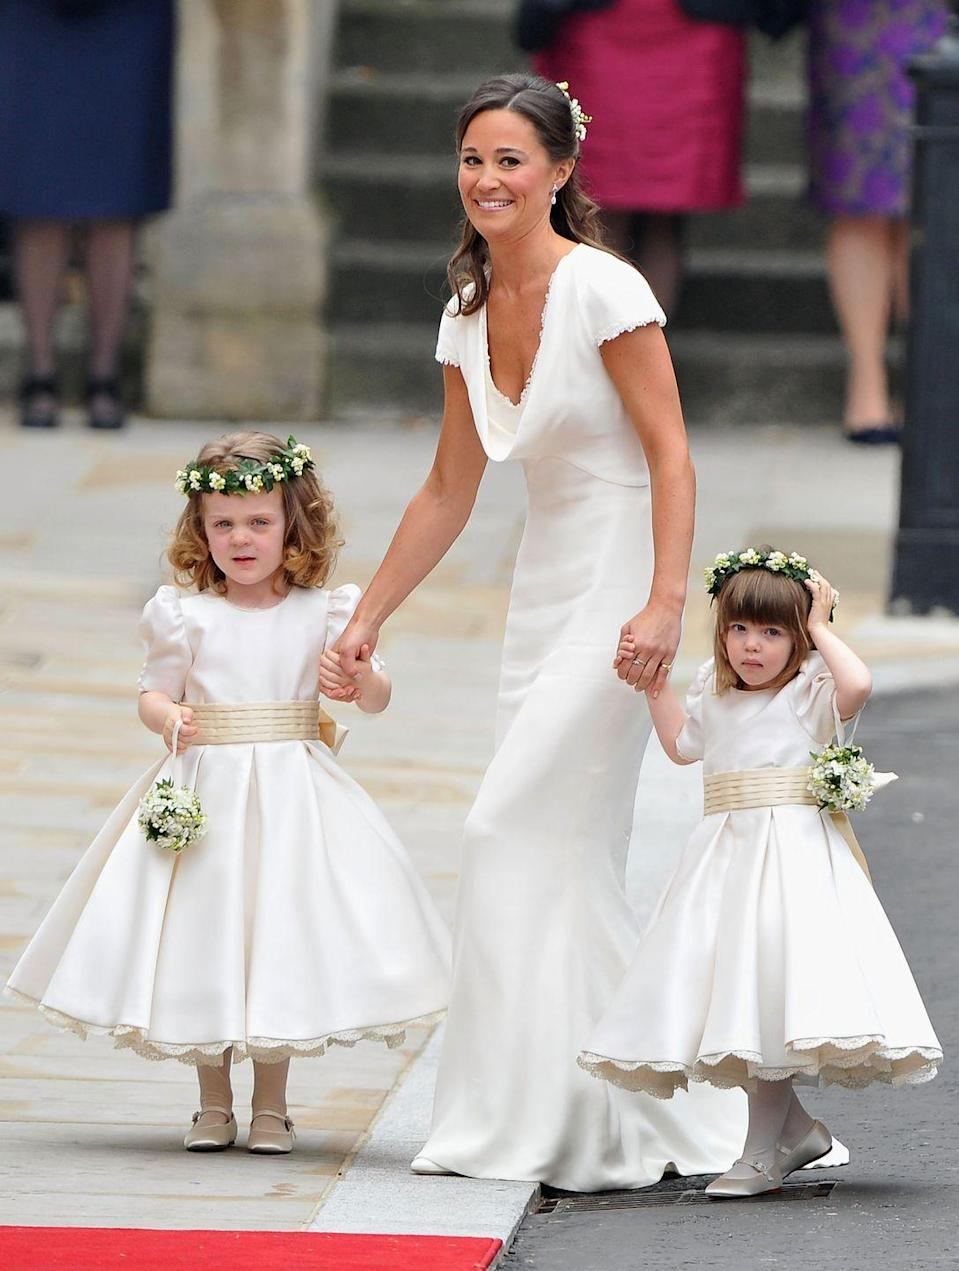 <p>Kate Middleton infused the wedding industry with a full dose of tradition when she married Prince William at Westminster Abbey in 2011. Pippa Middleton's maid of honor white dress reignited the age-old trend of all-white bridal party fashion.</p>